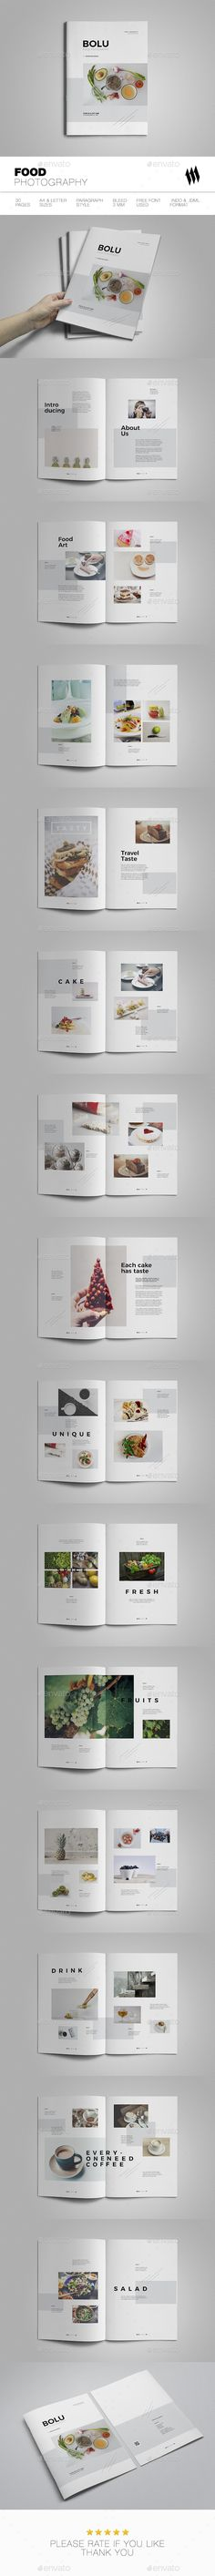 Food Photography Brochure Design Template - Brochures Print Template InDesign INDD. Download here: https://graphicriver.net/item/food-photography/19139355?ref=yinkira